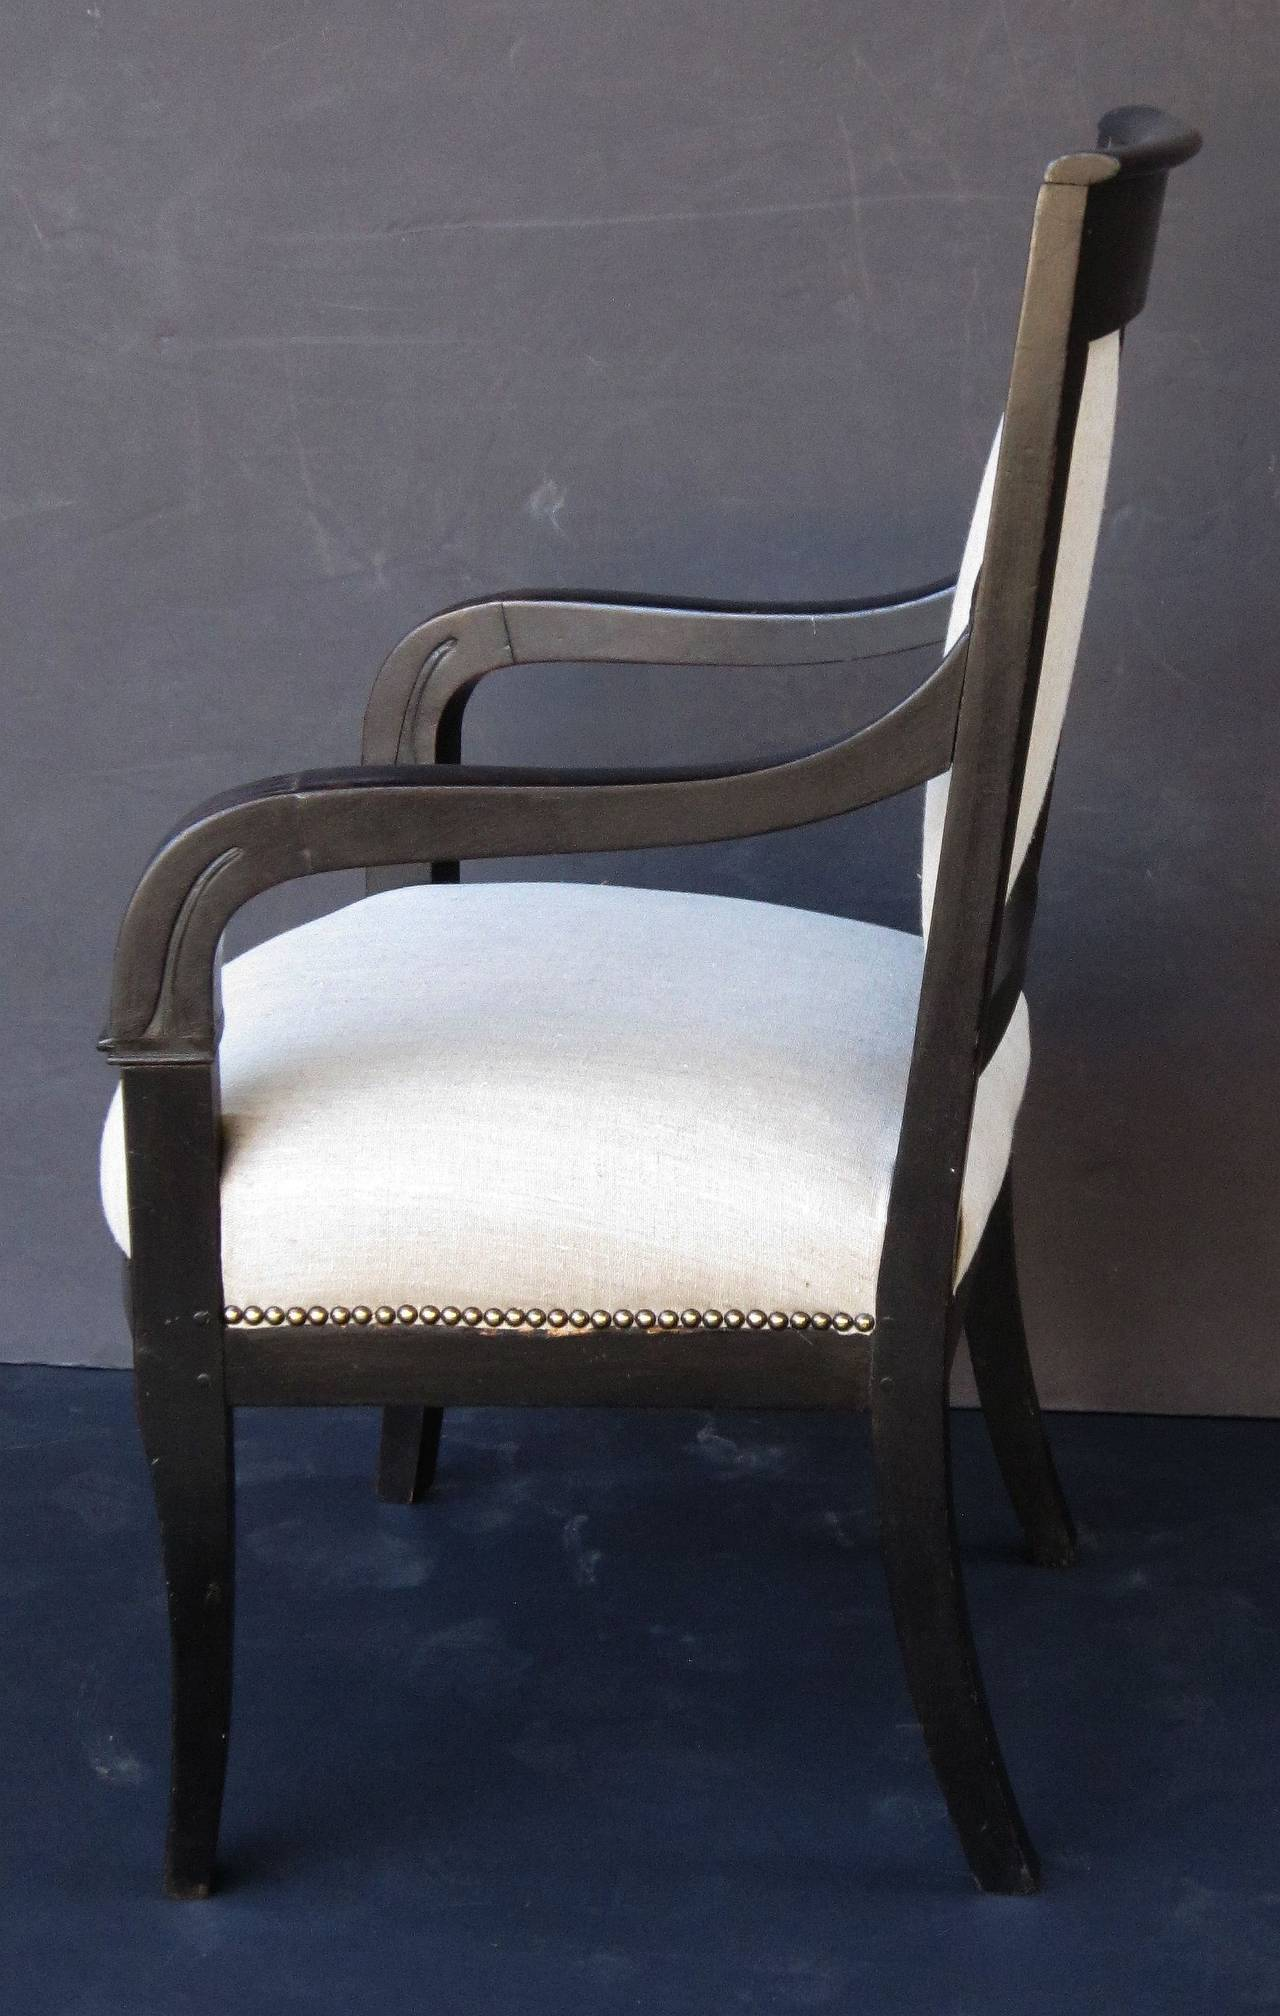 A handsome French ebonized mahogany desk chair (or armchair) featuring an upholstered back and seat with nailhead trim.  Elegant serpentine arms with carved designs in the Greek Revival style.